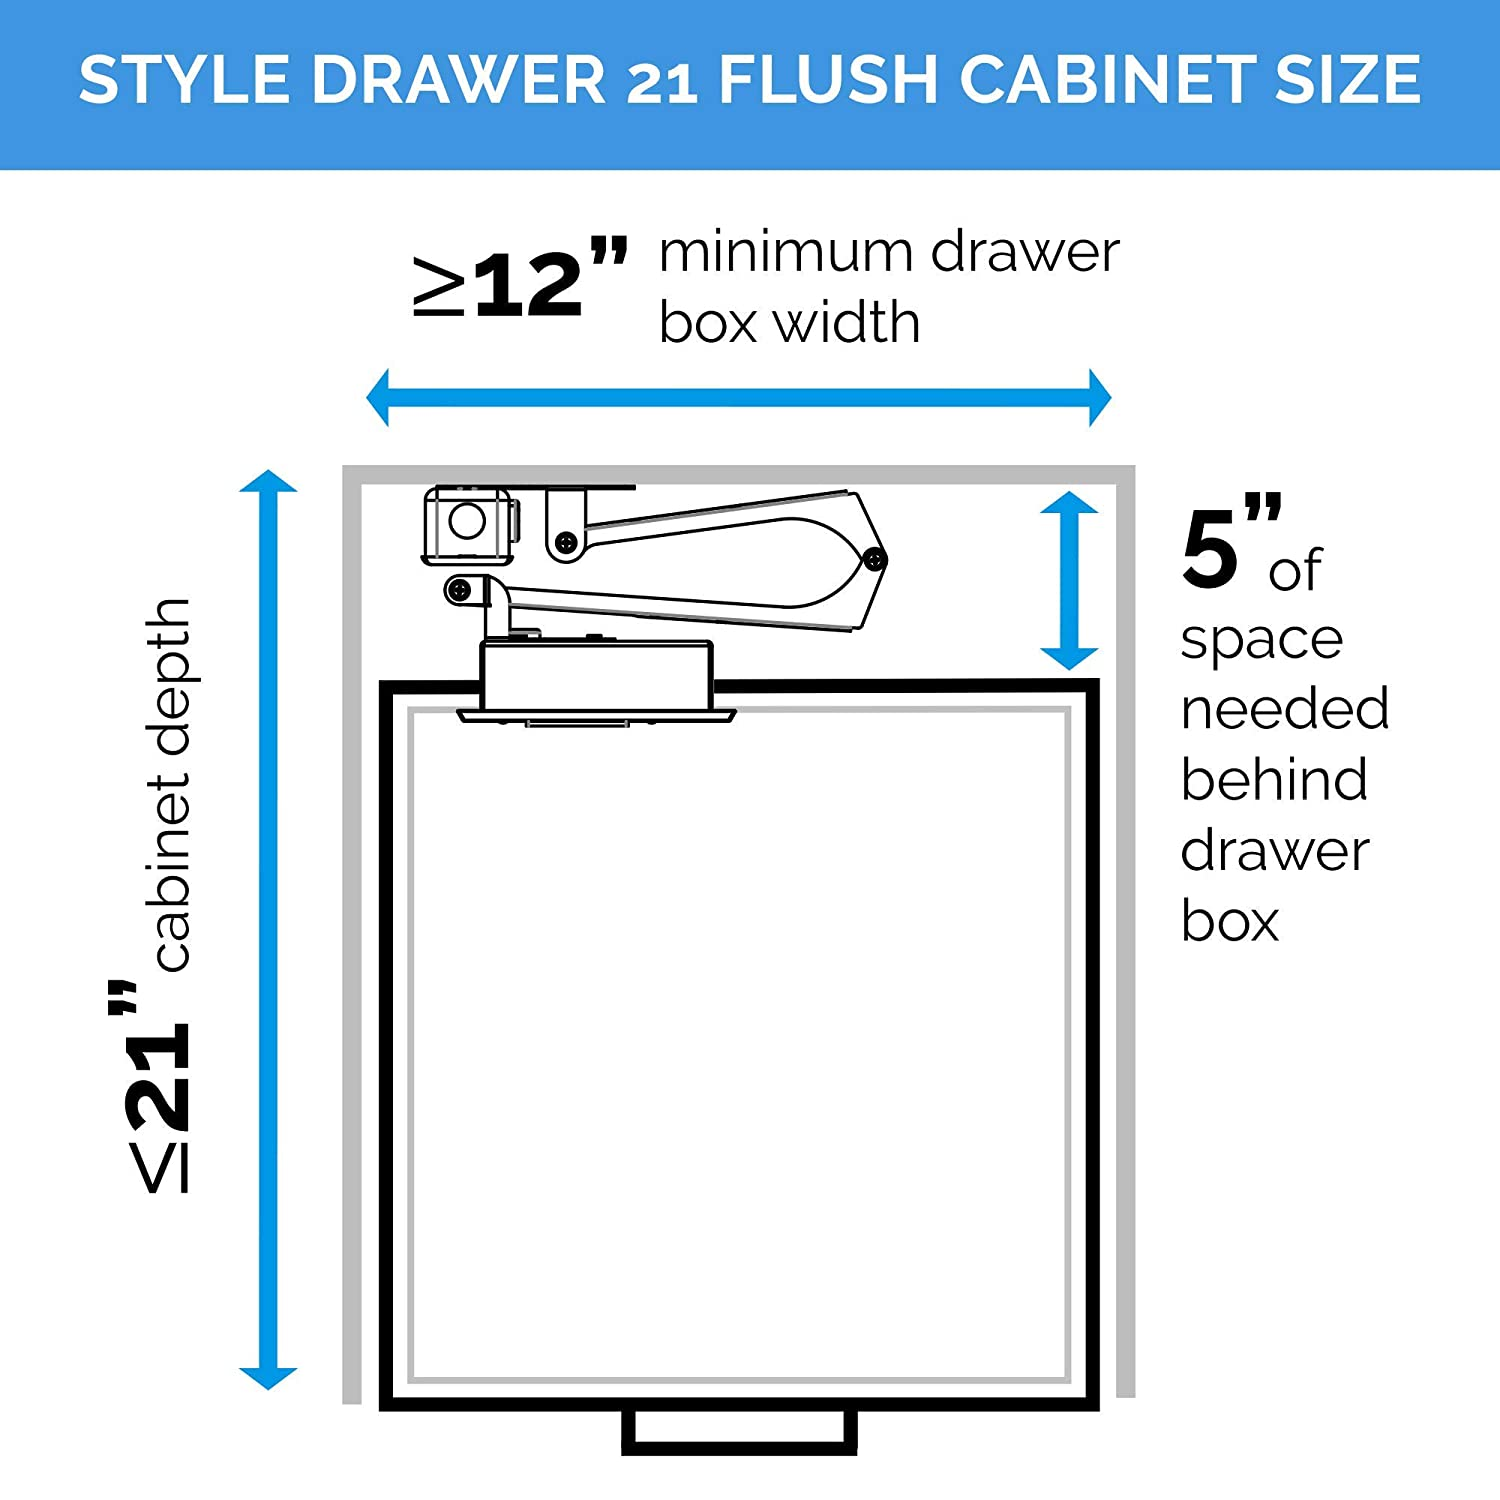 Renewed Docking Drawer Style Drawer 21 Flush In-Drawer Power Outlet with Thermostatic Shutoff Easy to Install 20 AMP GFCI Outlet 21 Flush, White Listed to UL 962a